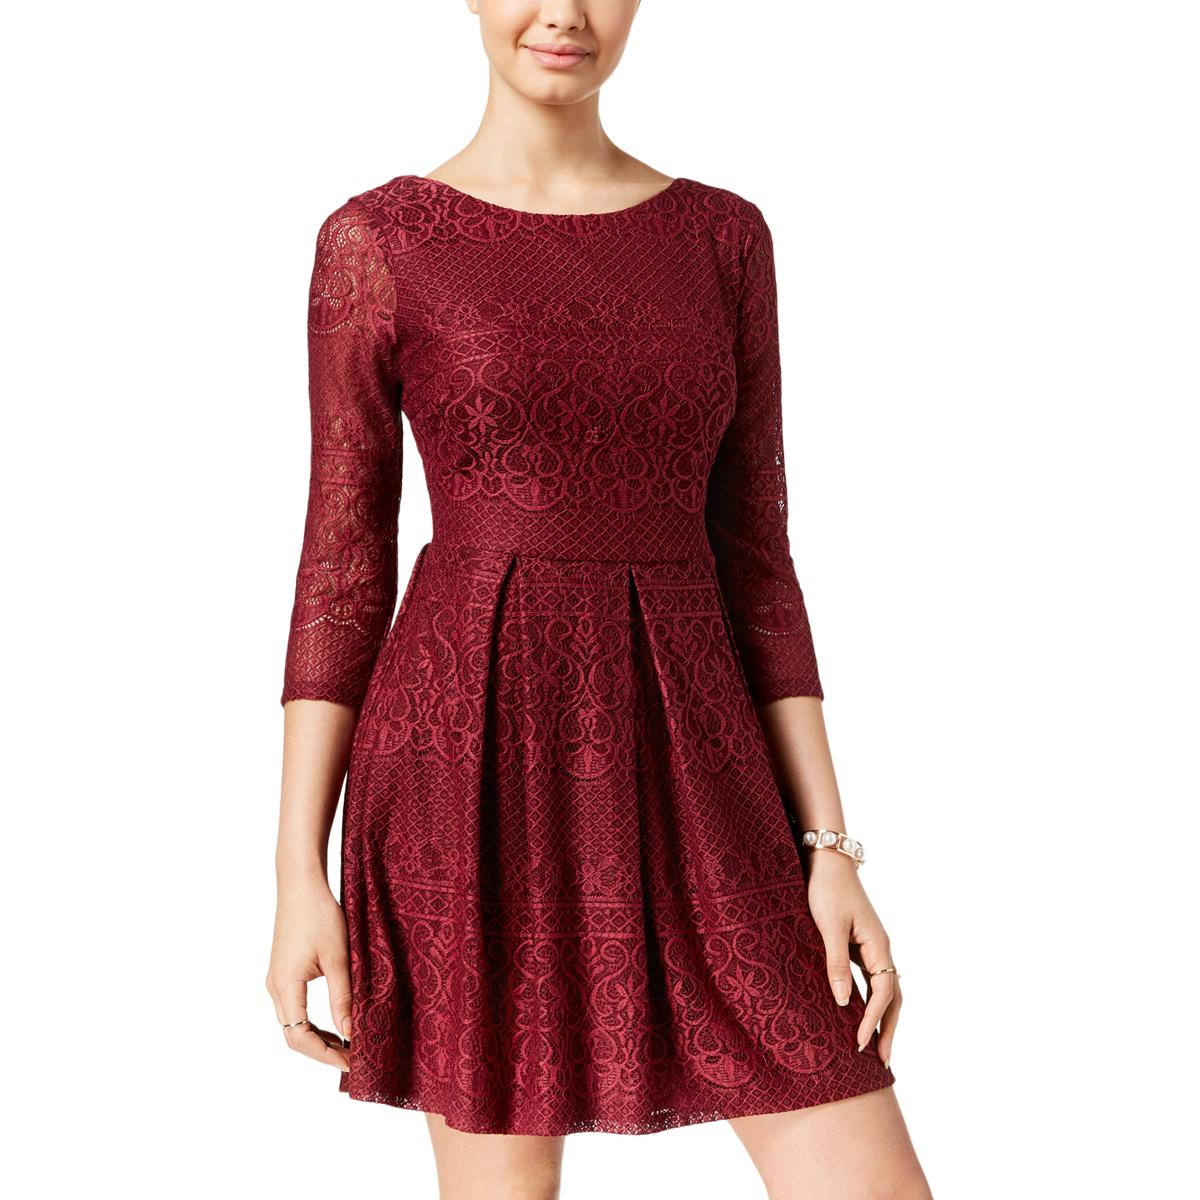 771dedb2a728 Details about B. Darlin Womens Red Lace Overlay Party Dress Juniors 5/6  BHFO 3282